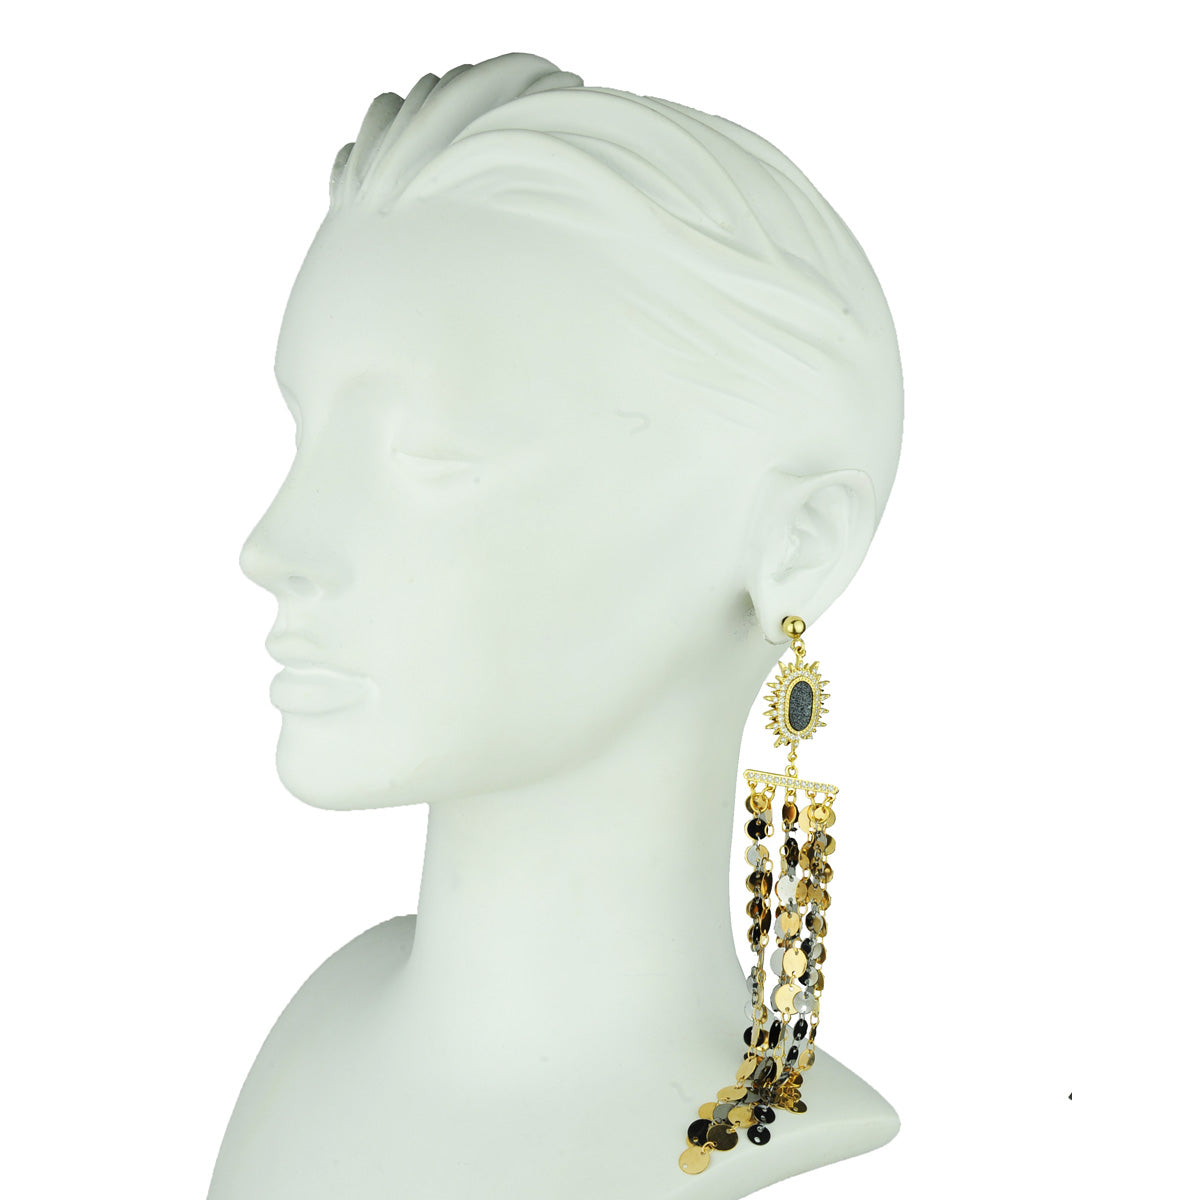 dangle earrings with metal chains and crystals 925 silver studs katerina psoma